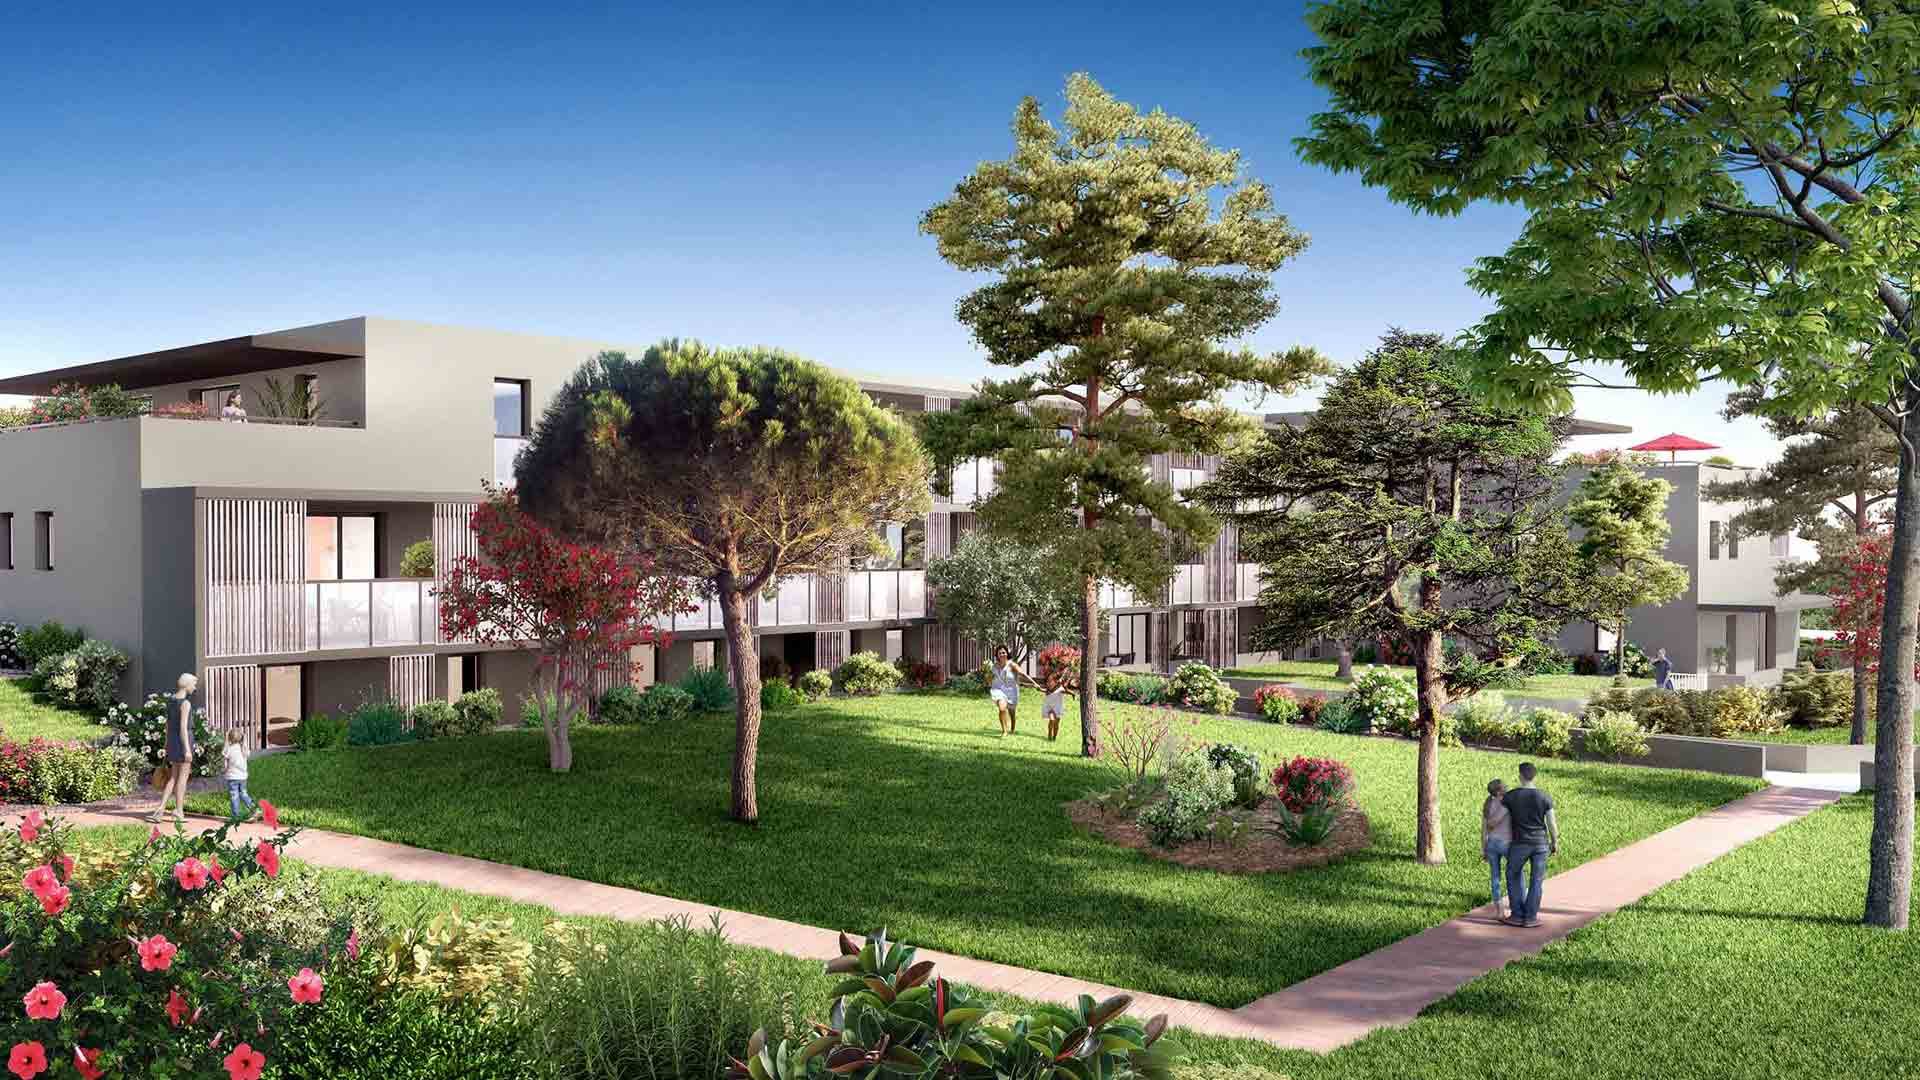 Nota verde programme immobilier neuf montpellier for Aide achat immobilier neuf